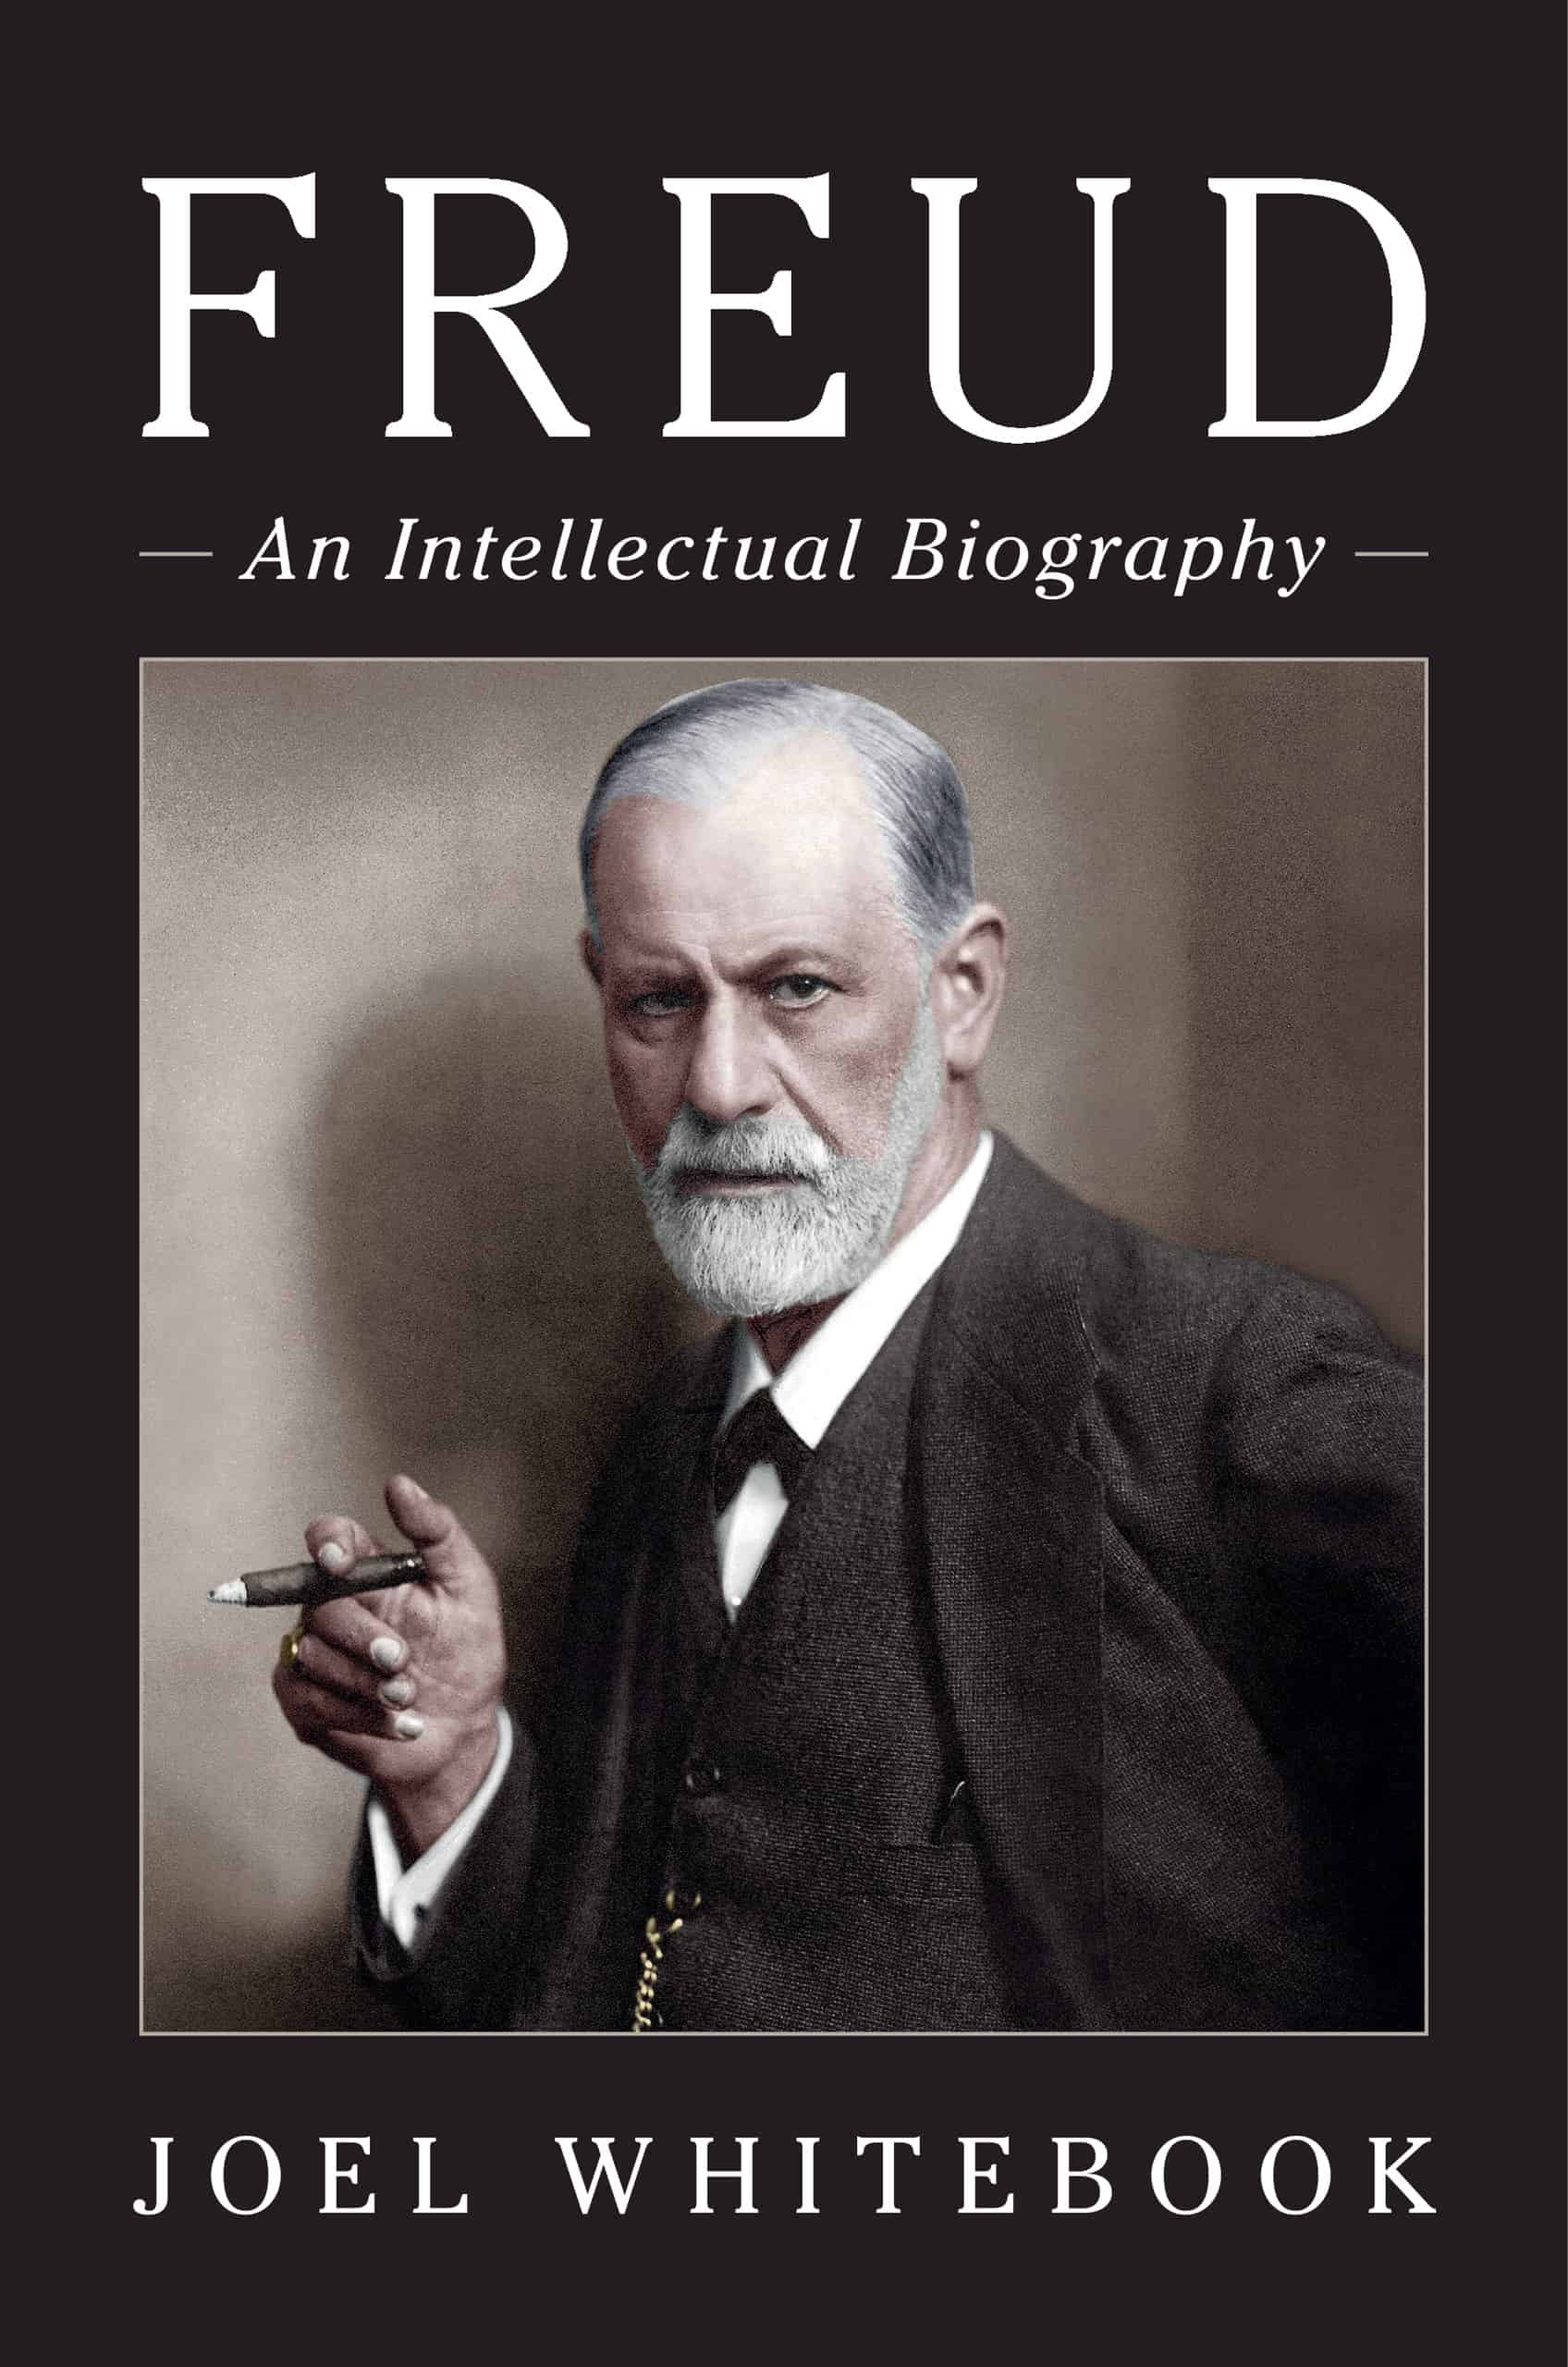 9780521864183A - Freud: An Intellectual Biography